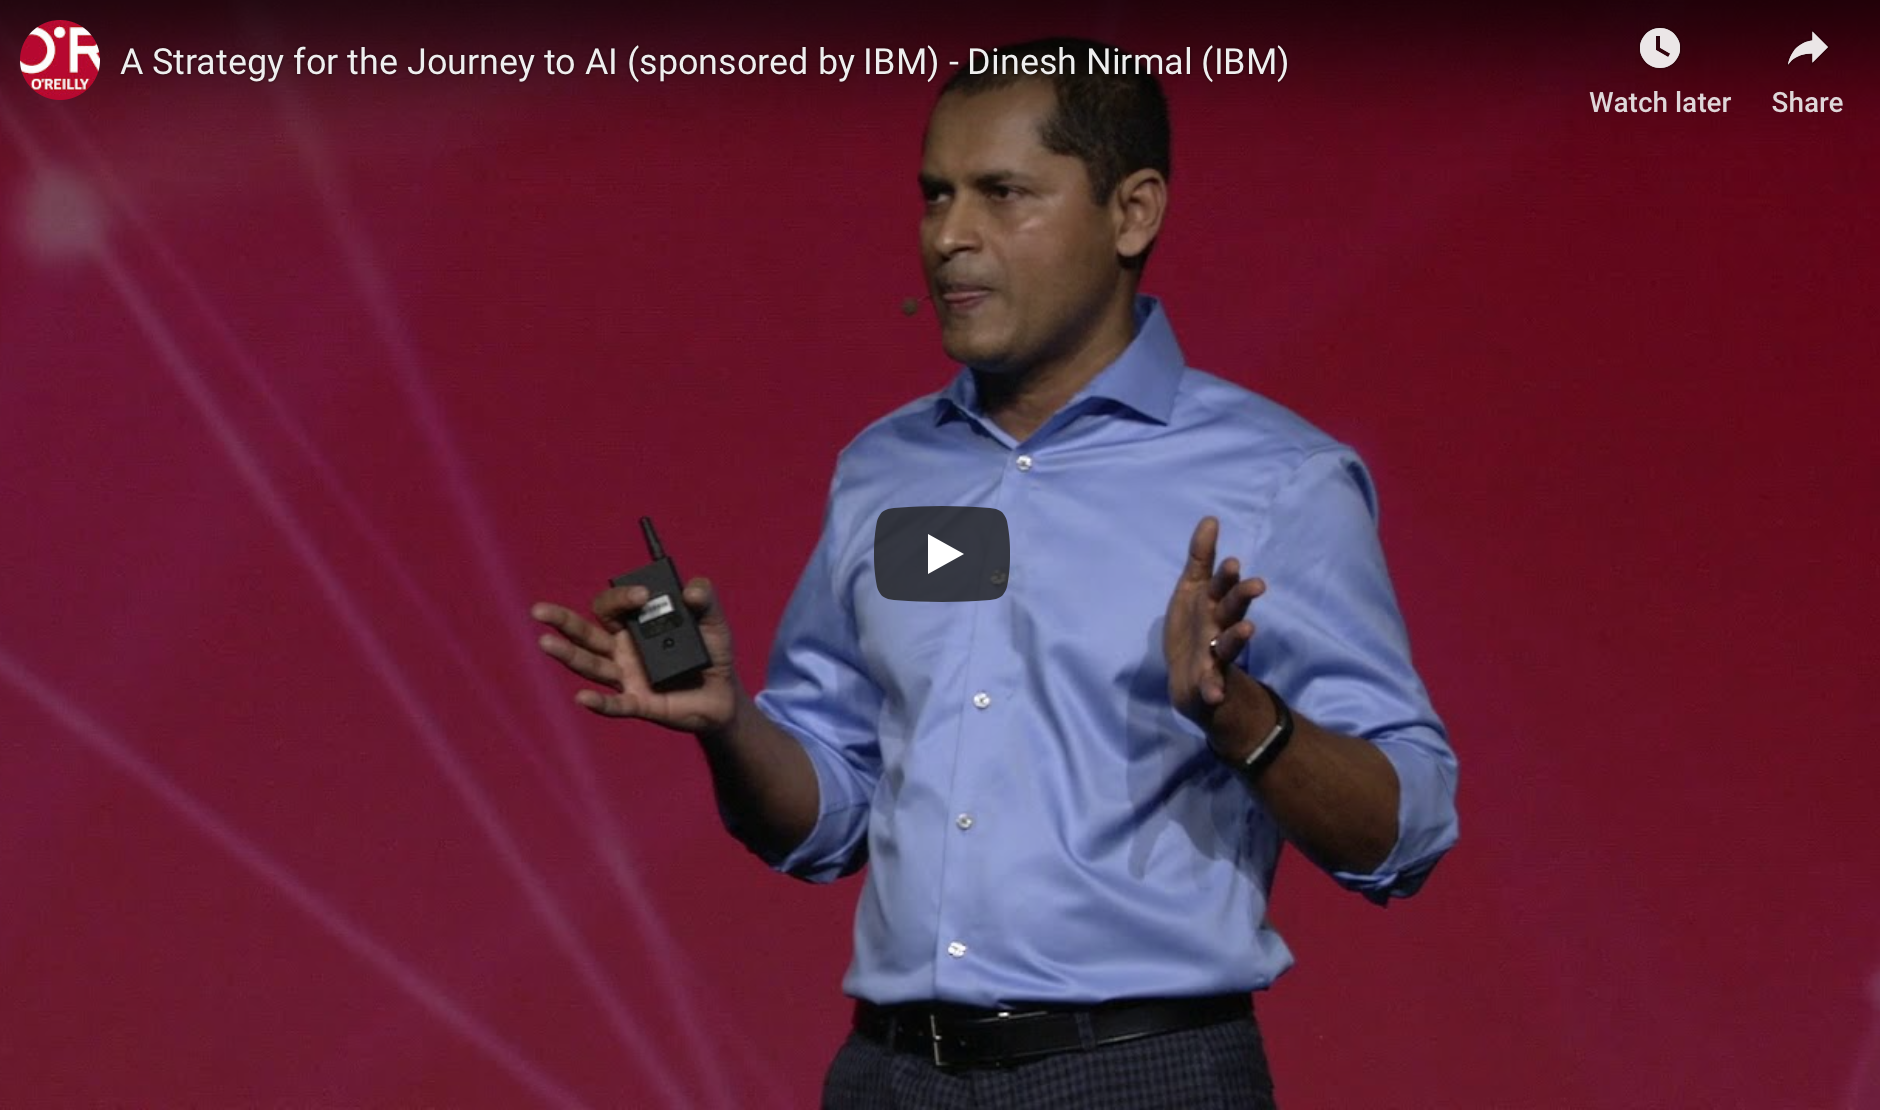 Dinesh-Nirmal_Strata-Data_OReilly_2019_San-Francisco_Keynote-2019.png